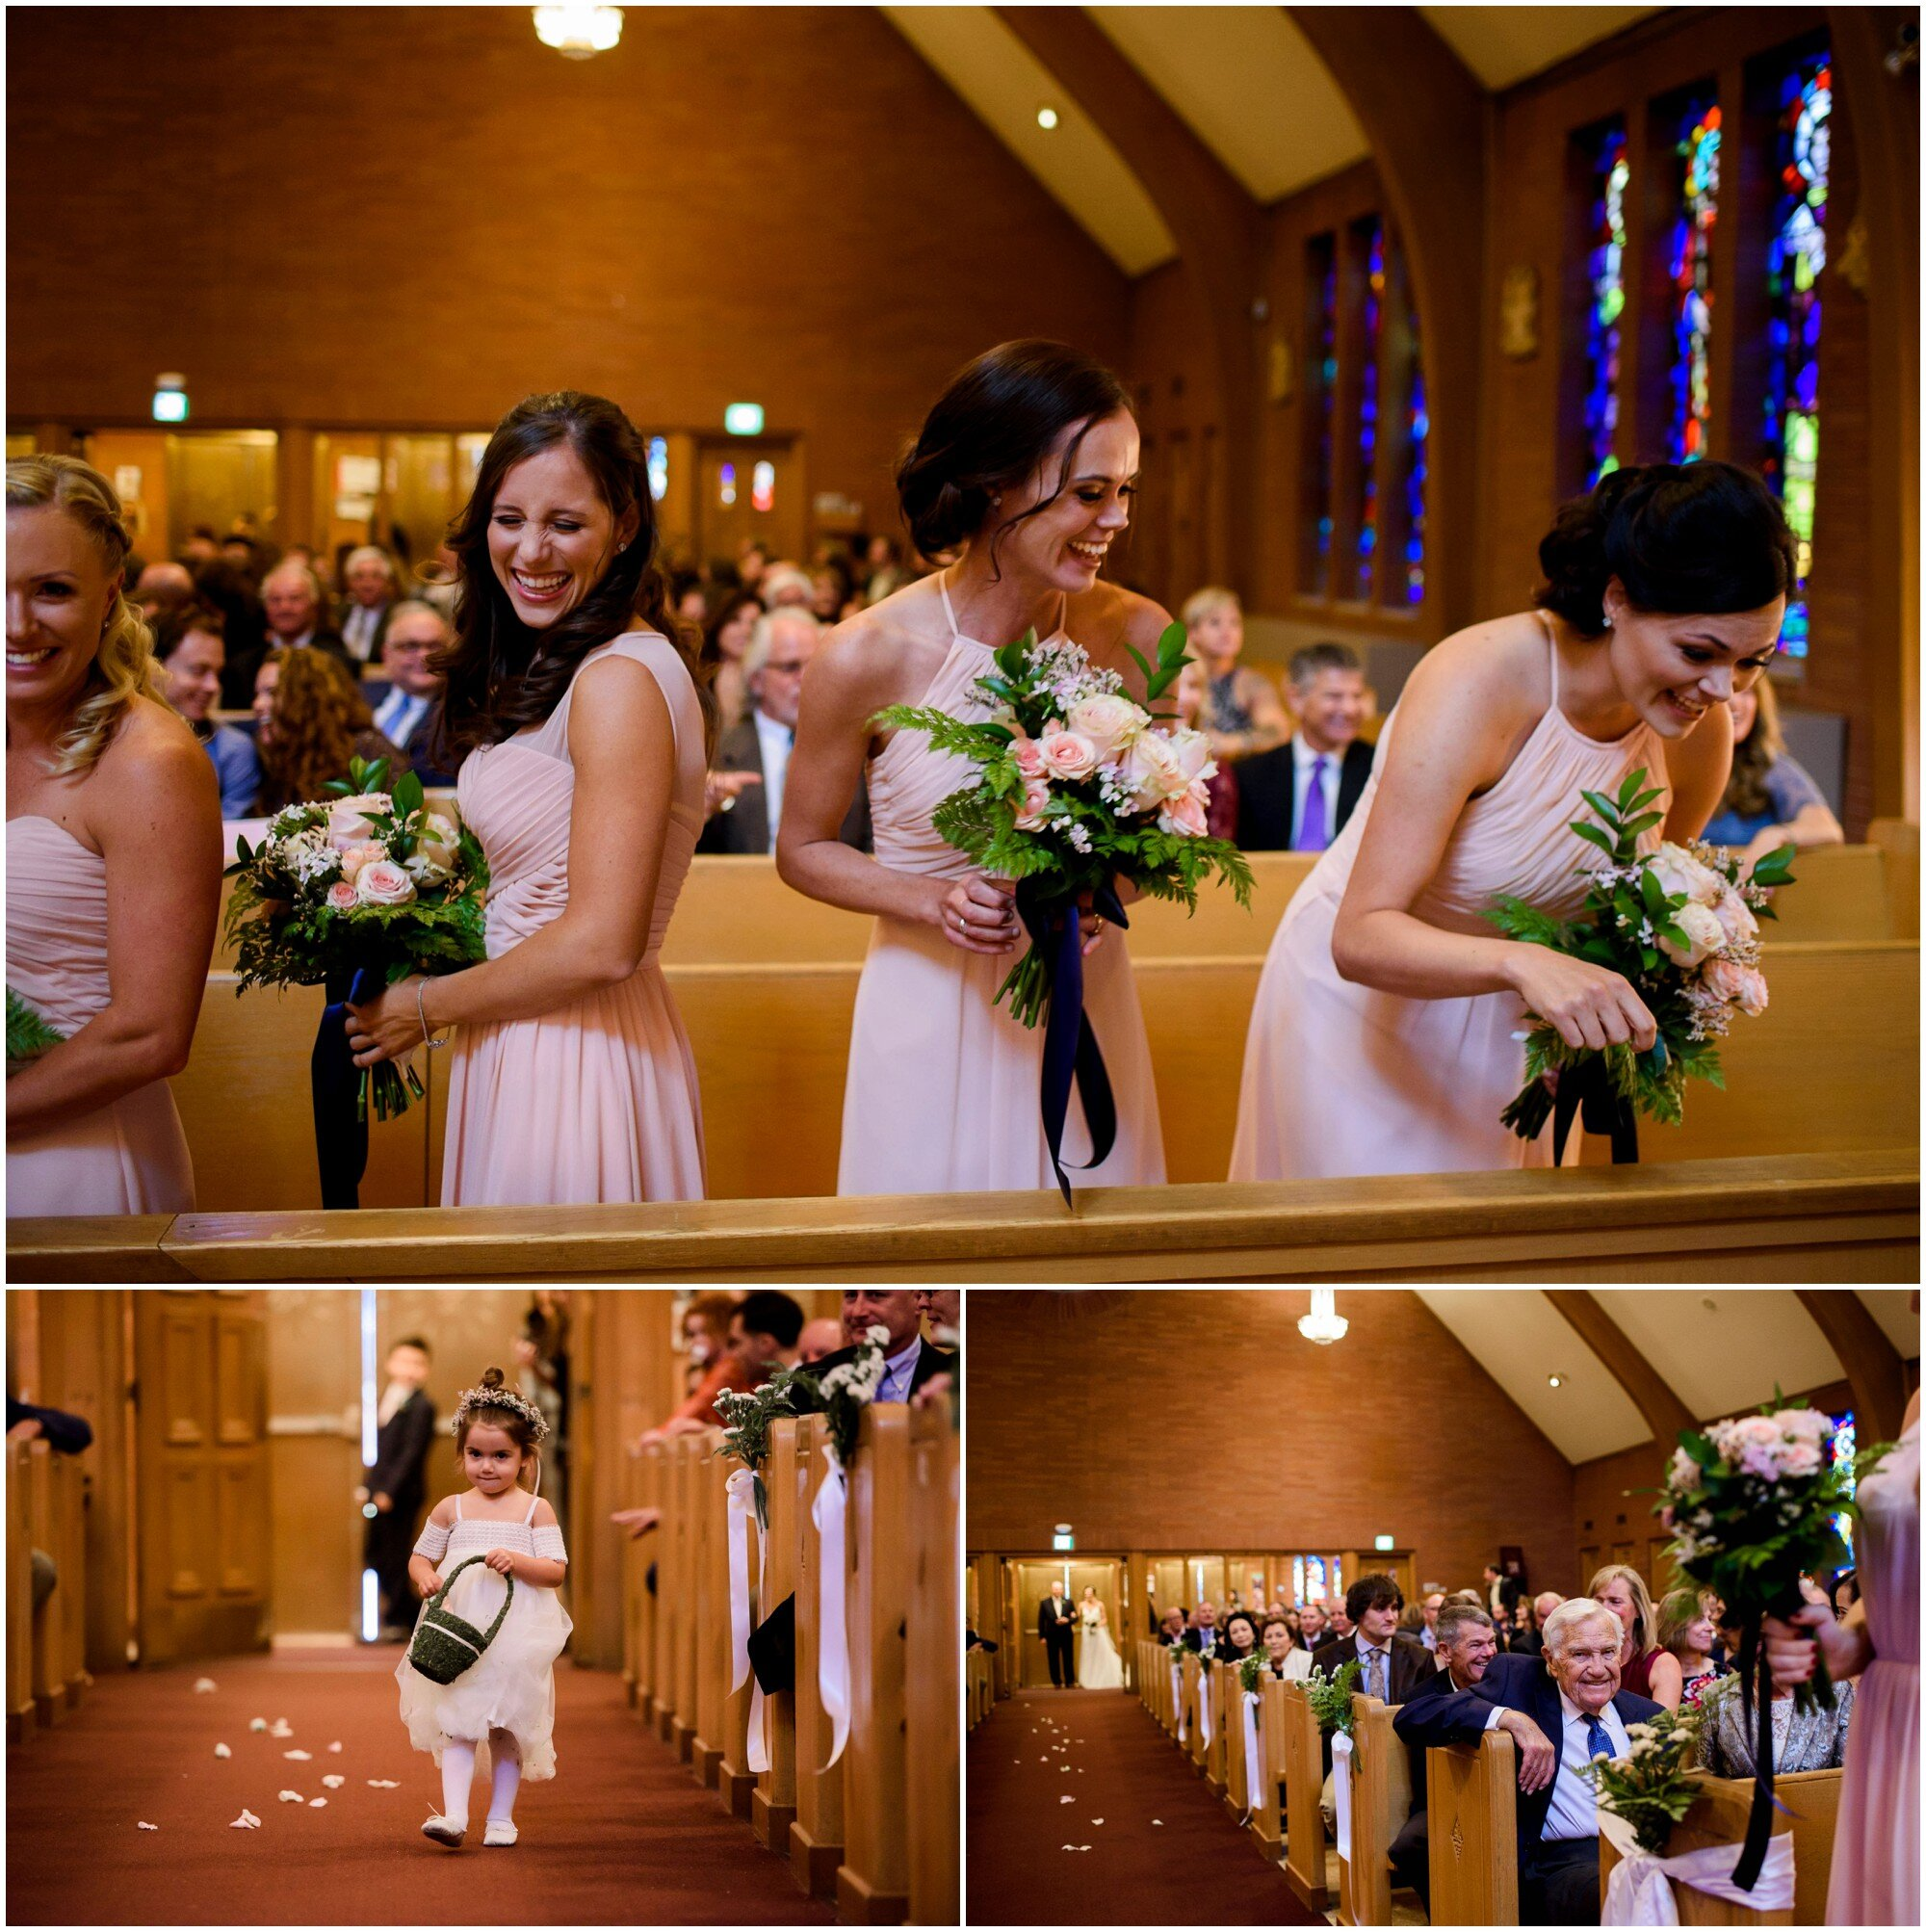 Bridesmaids smile at cute flower girl in flower crown walking down the aisle.